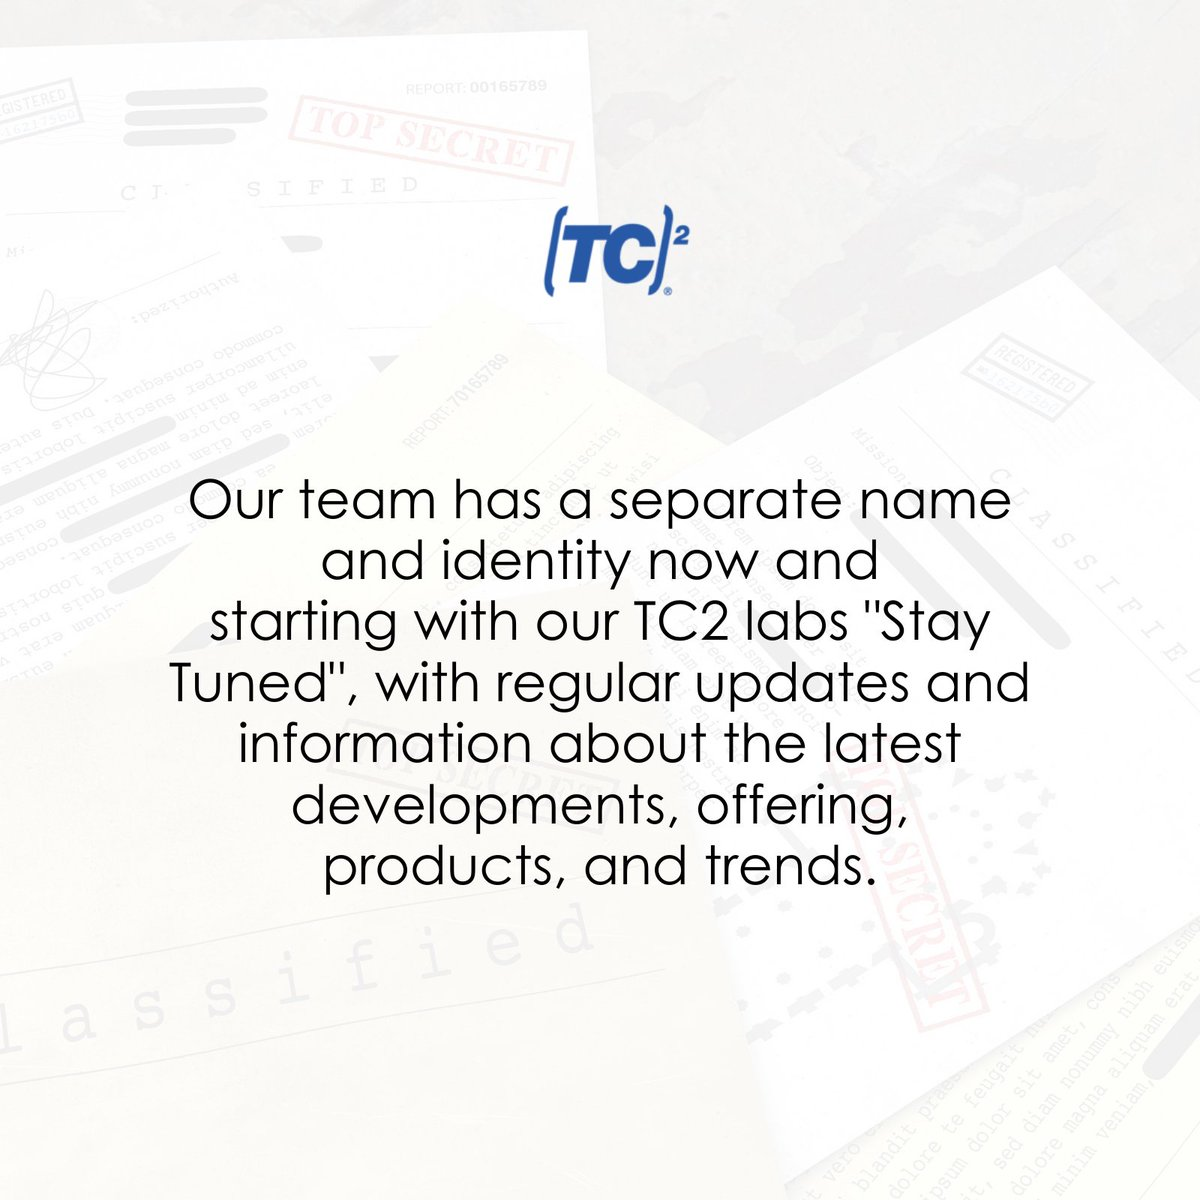 Your TC2 Labs team, at your service! For more such updates:   #3DTechnology #Fashion #Fitness #Reach #Research #Reality #3dcustomisedsolutions #3DServices #3DScanners #3rdDimension #NewDimension